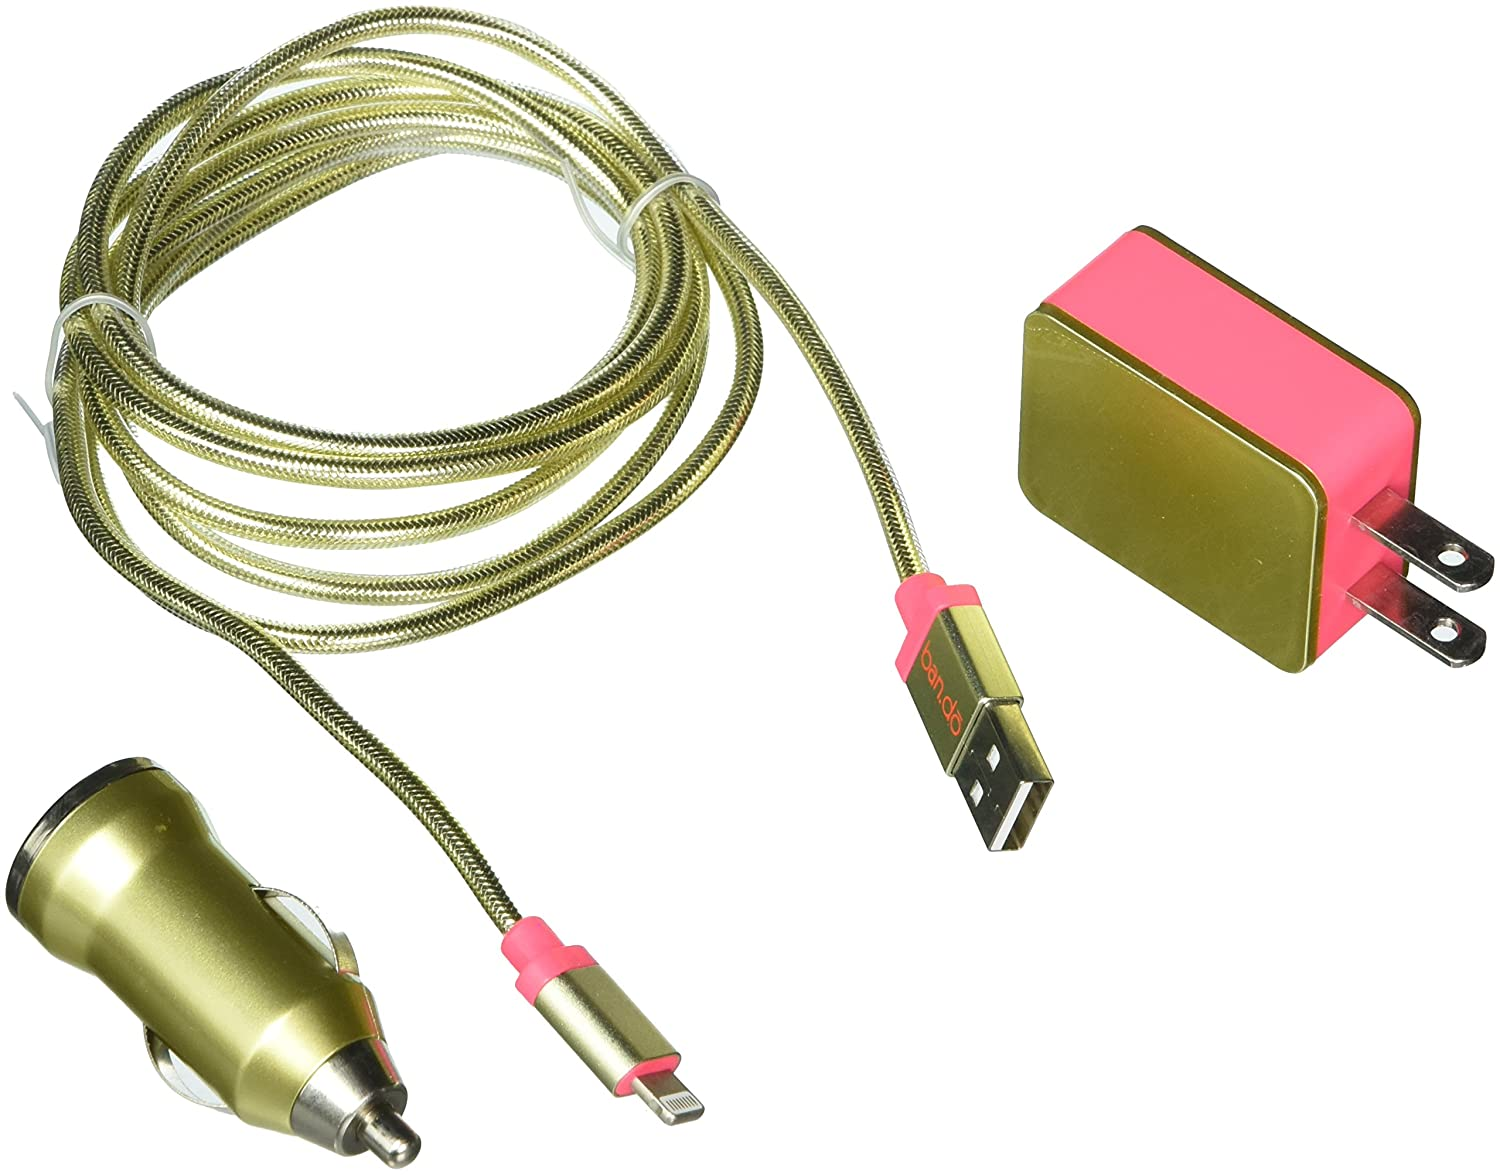 Bando Charger Set with Wall and Car Charger and USB Cord for Iphone 5/5s/5c, 6/6s/Plus - Retail Packaging - Metallic Gold The Regatta Group DBA Beauty Depot 825466939356